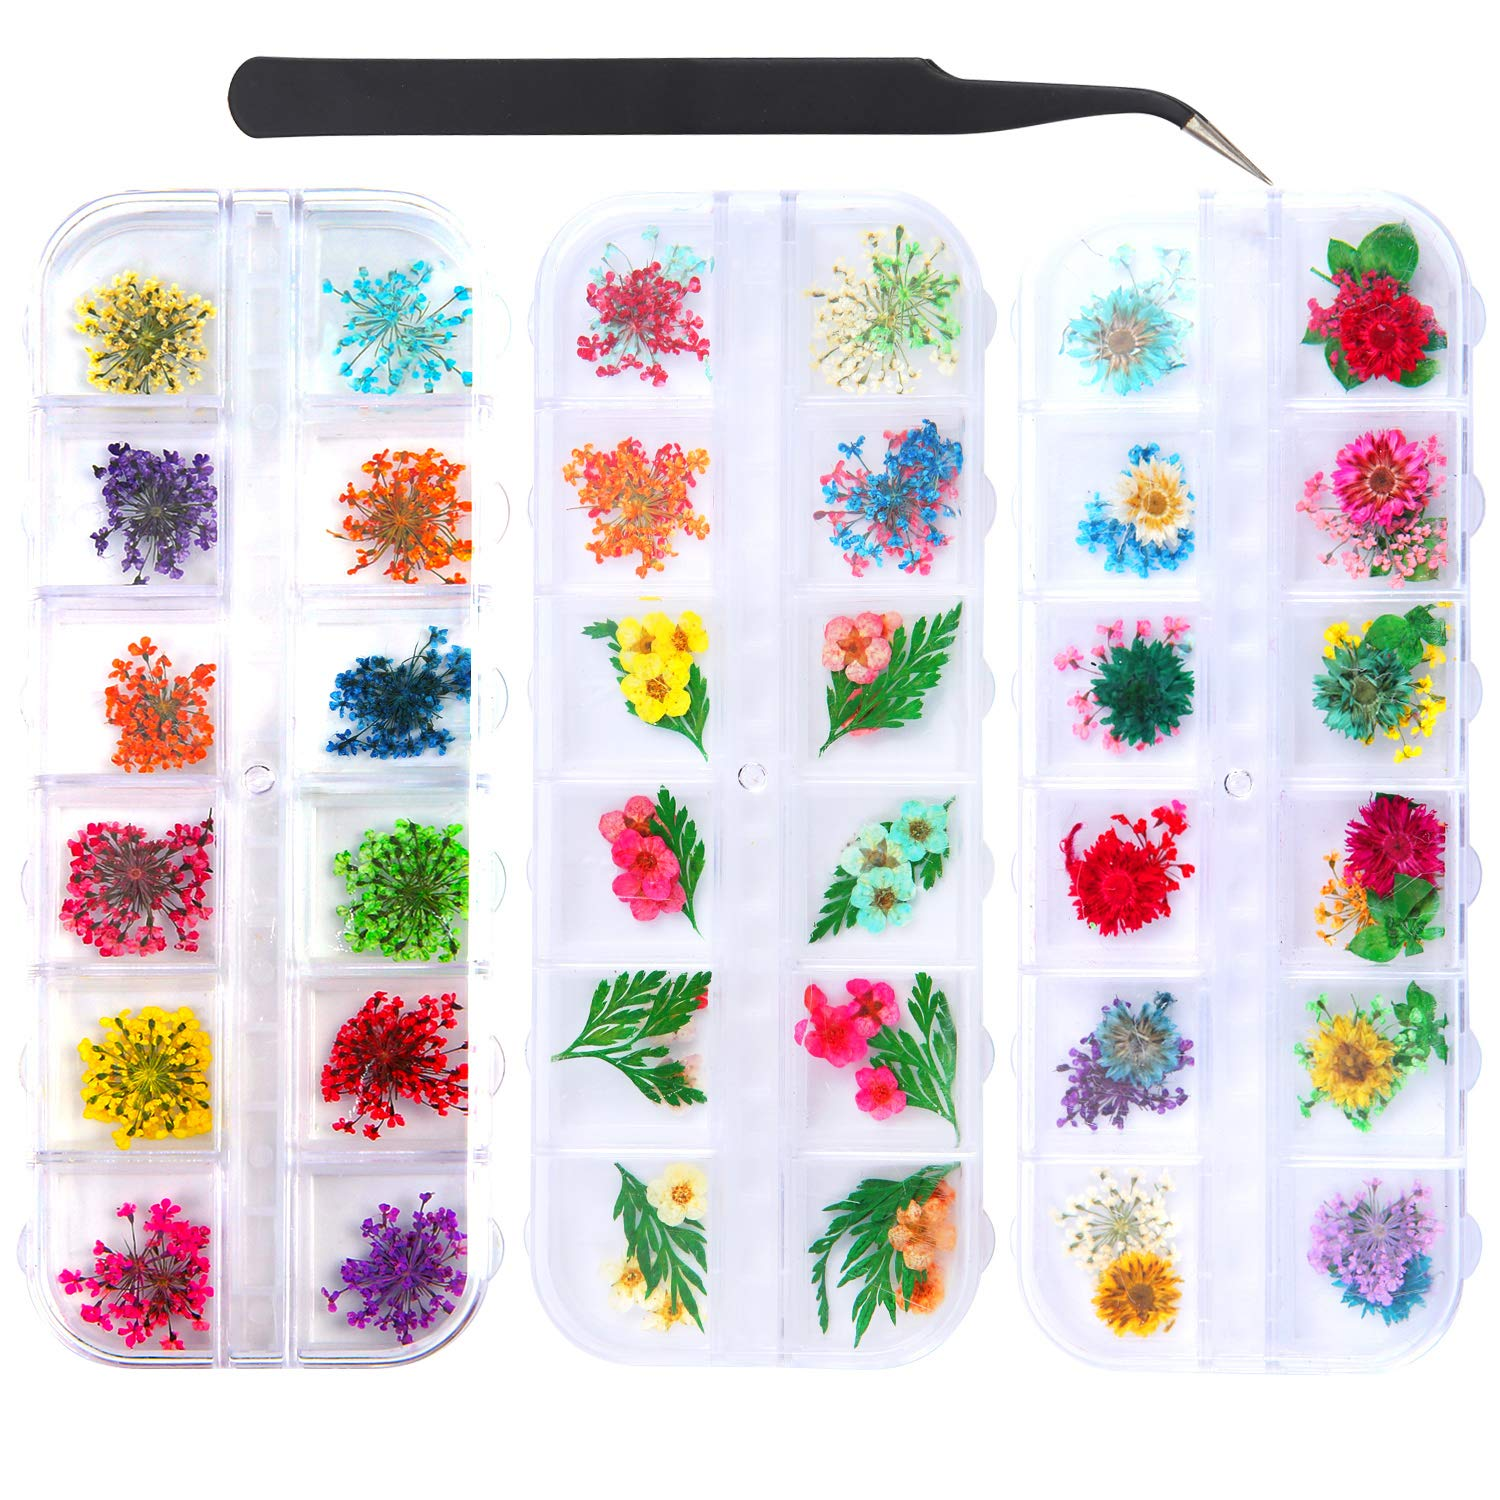 Elcoho 3 Boxes Dried Flowers for Nail Art 36 Colors Mini Nail Dried Flowers for Tips Manicure Decor with a Curved Tweezer (Pattern 1) by Elcoho